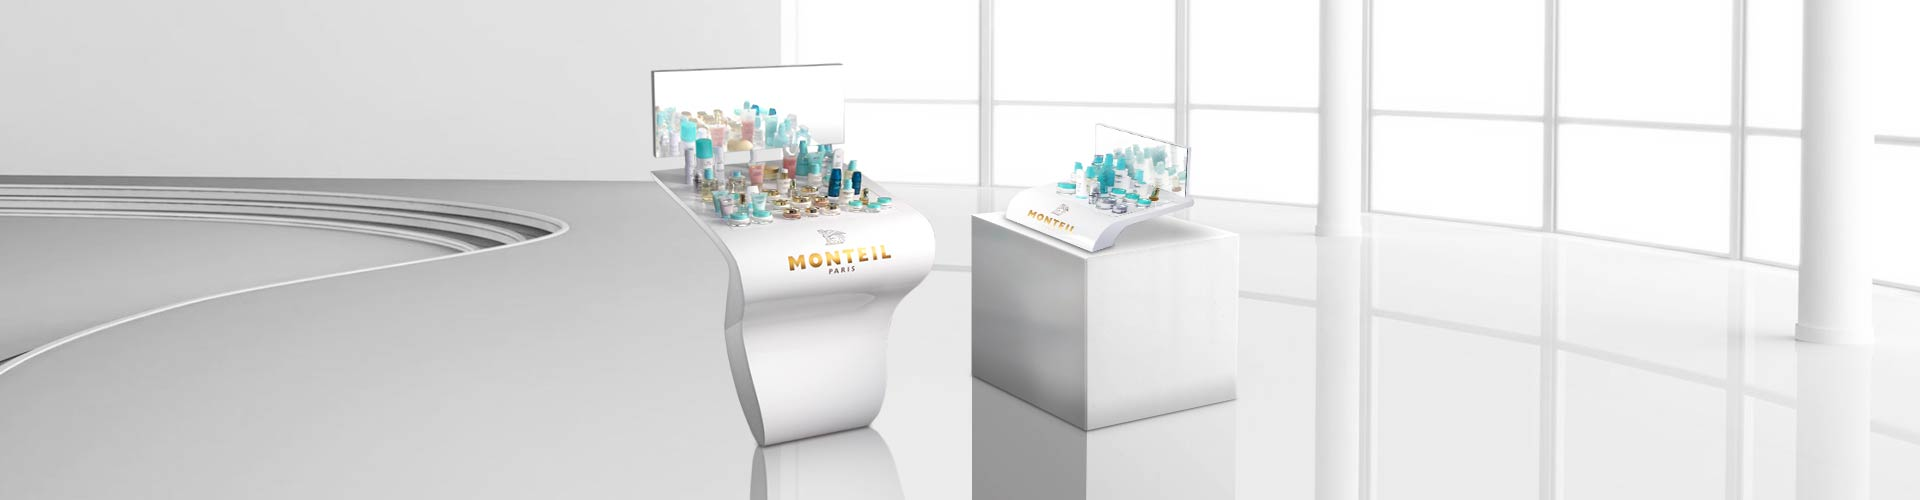 POS Display, Point of Sale Marketing, POS, Monteil, Cosmetics, Floor Display, Sales Stand